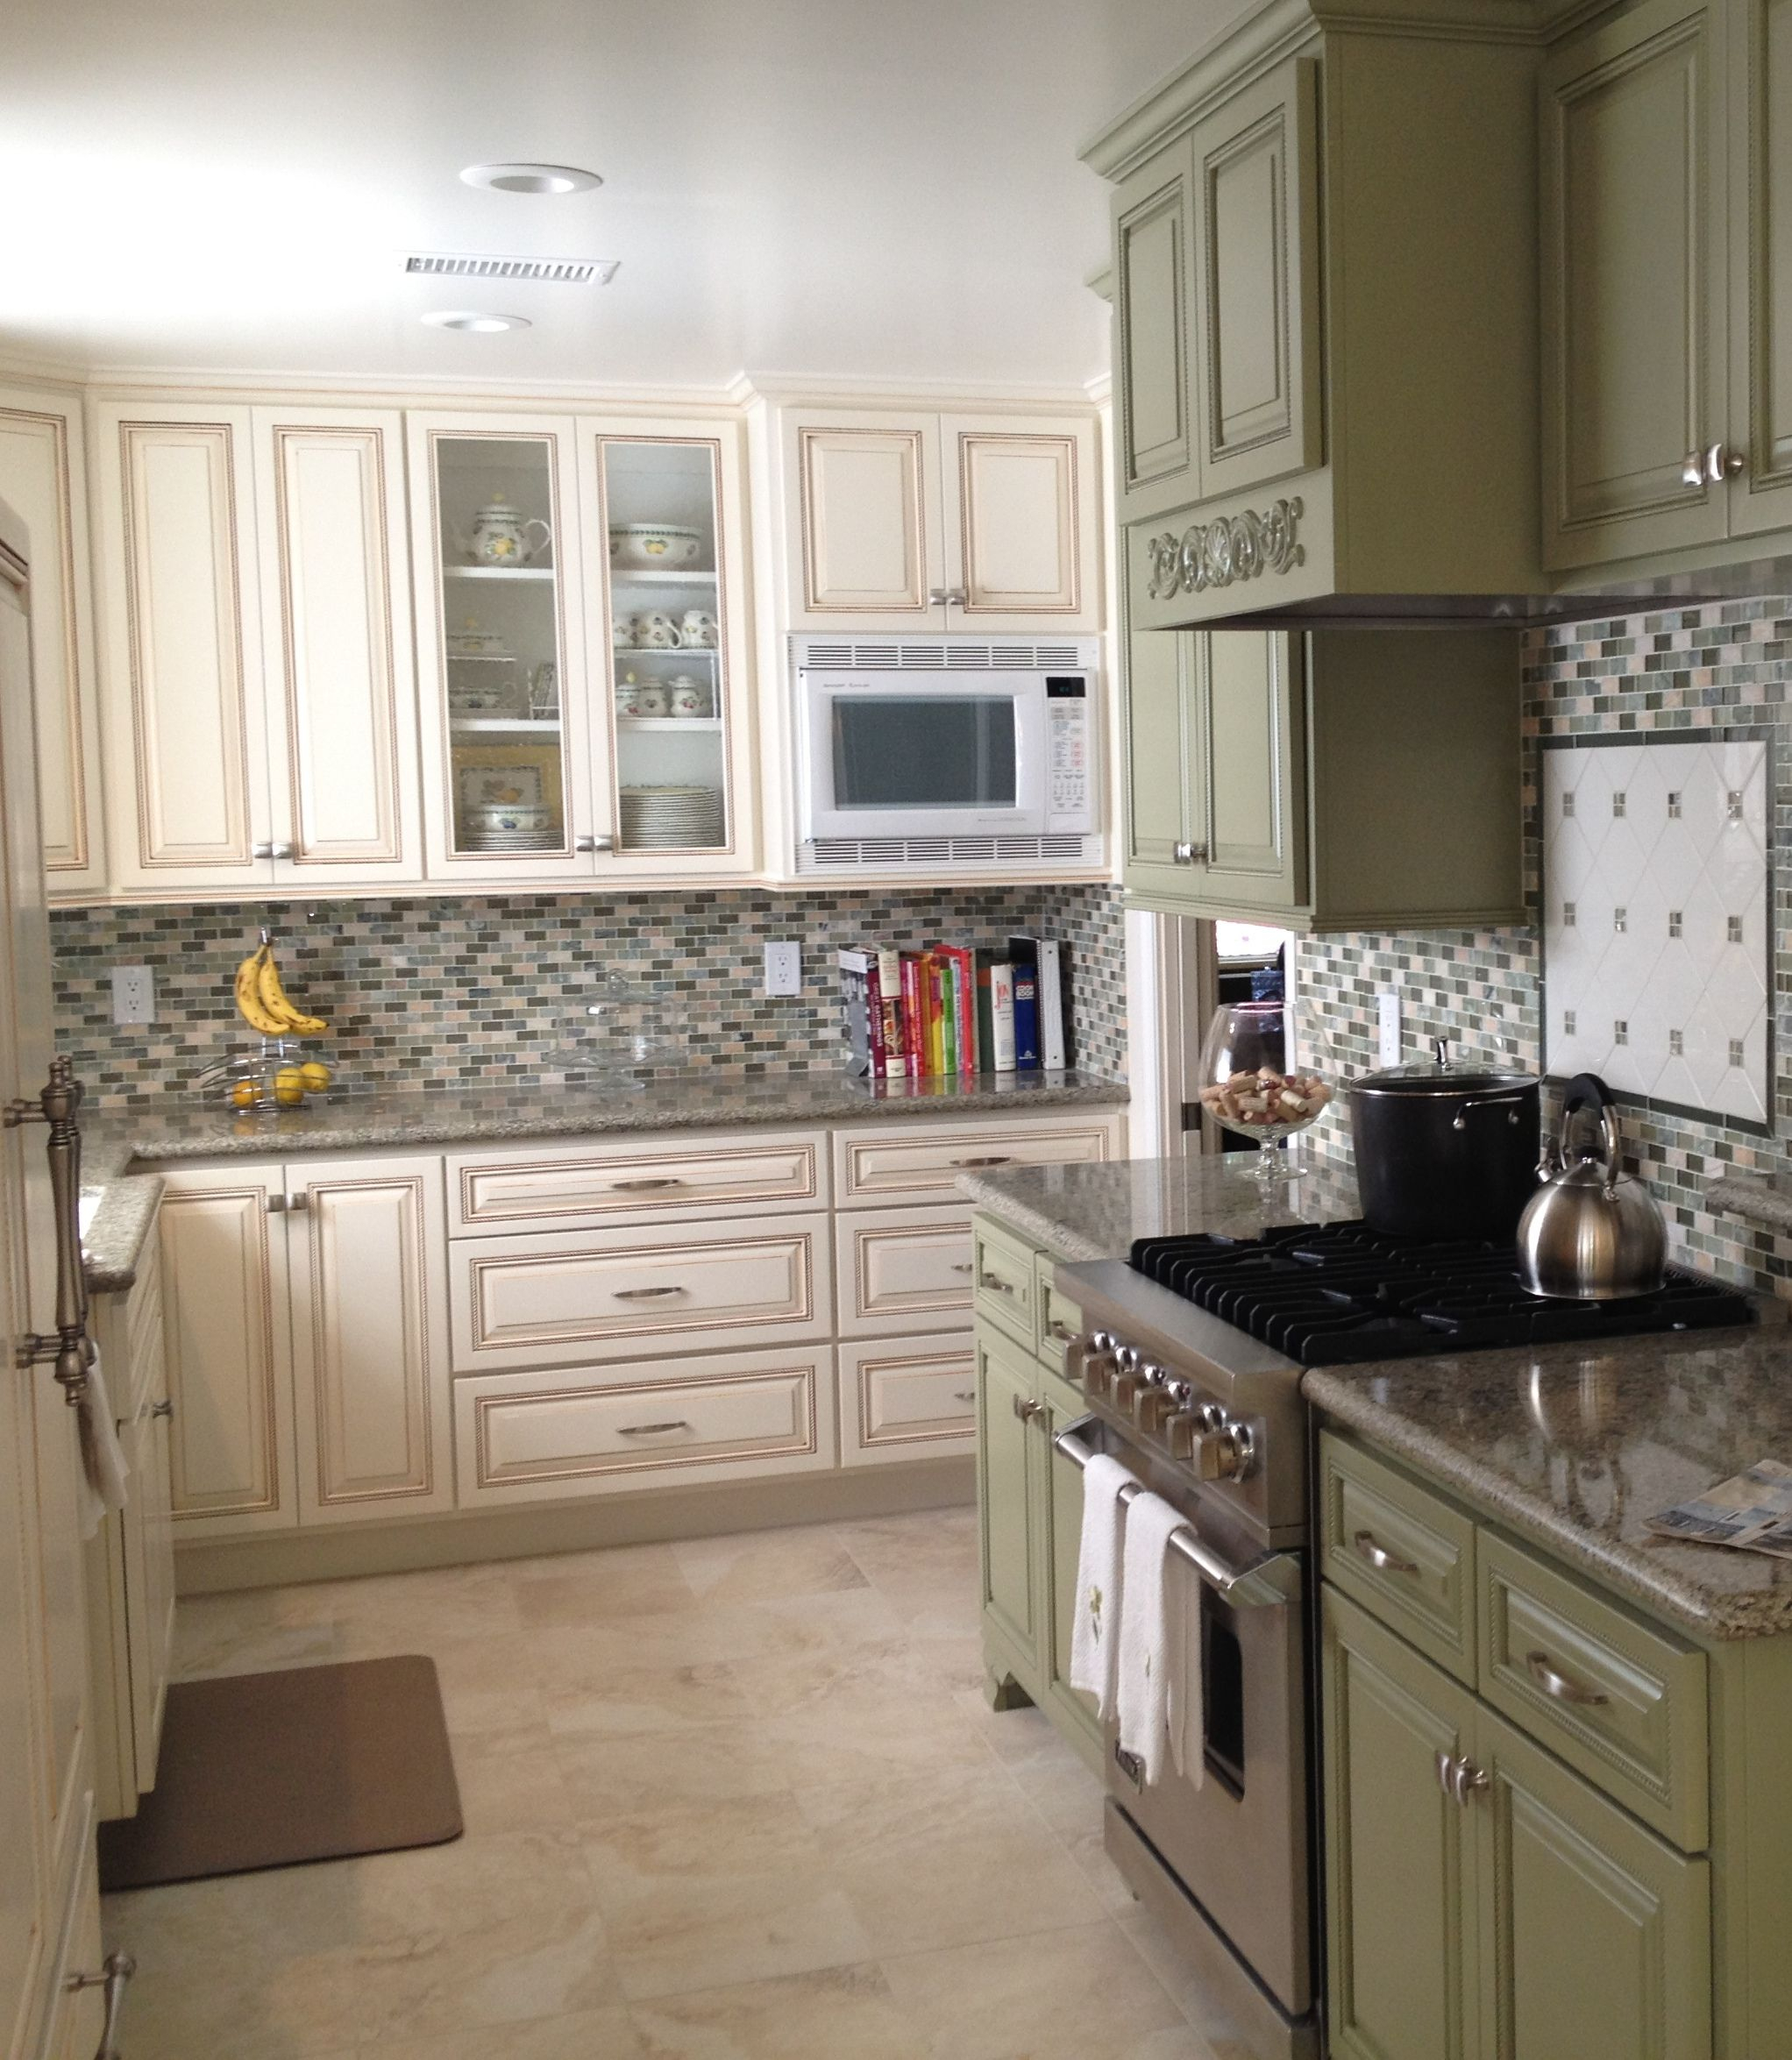 Pearl White Cabinets With Carmel Glaze Seafoam Green On Range Wall